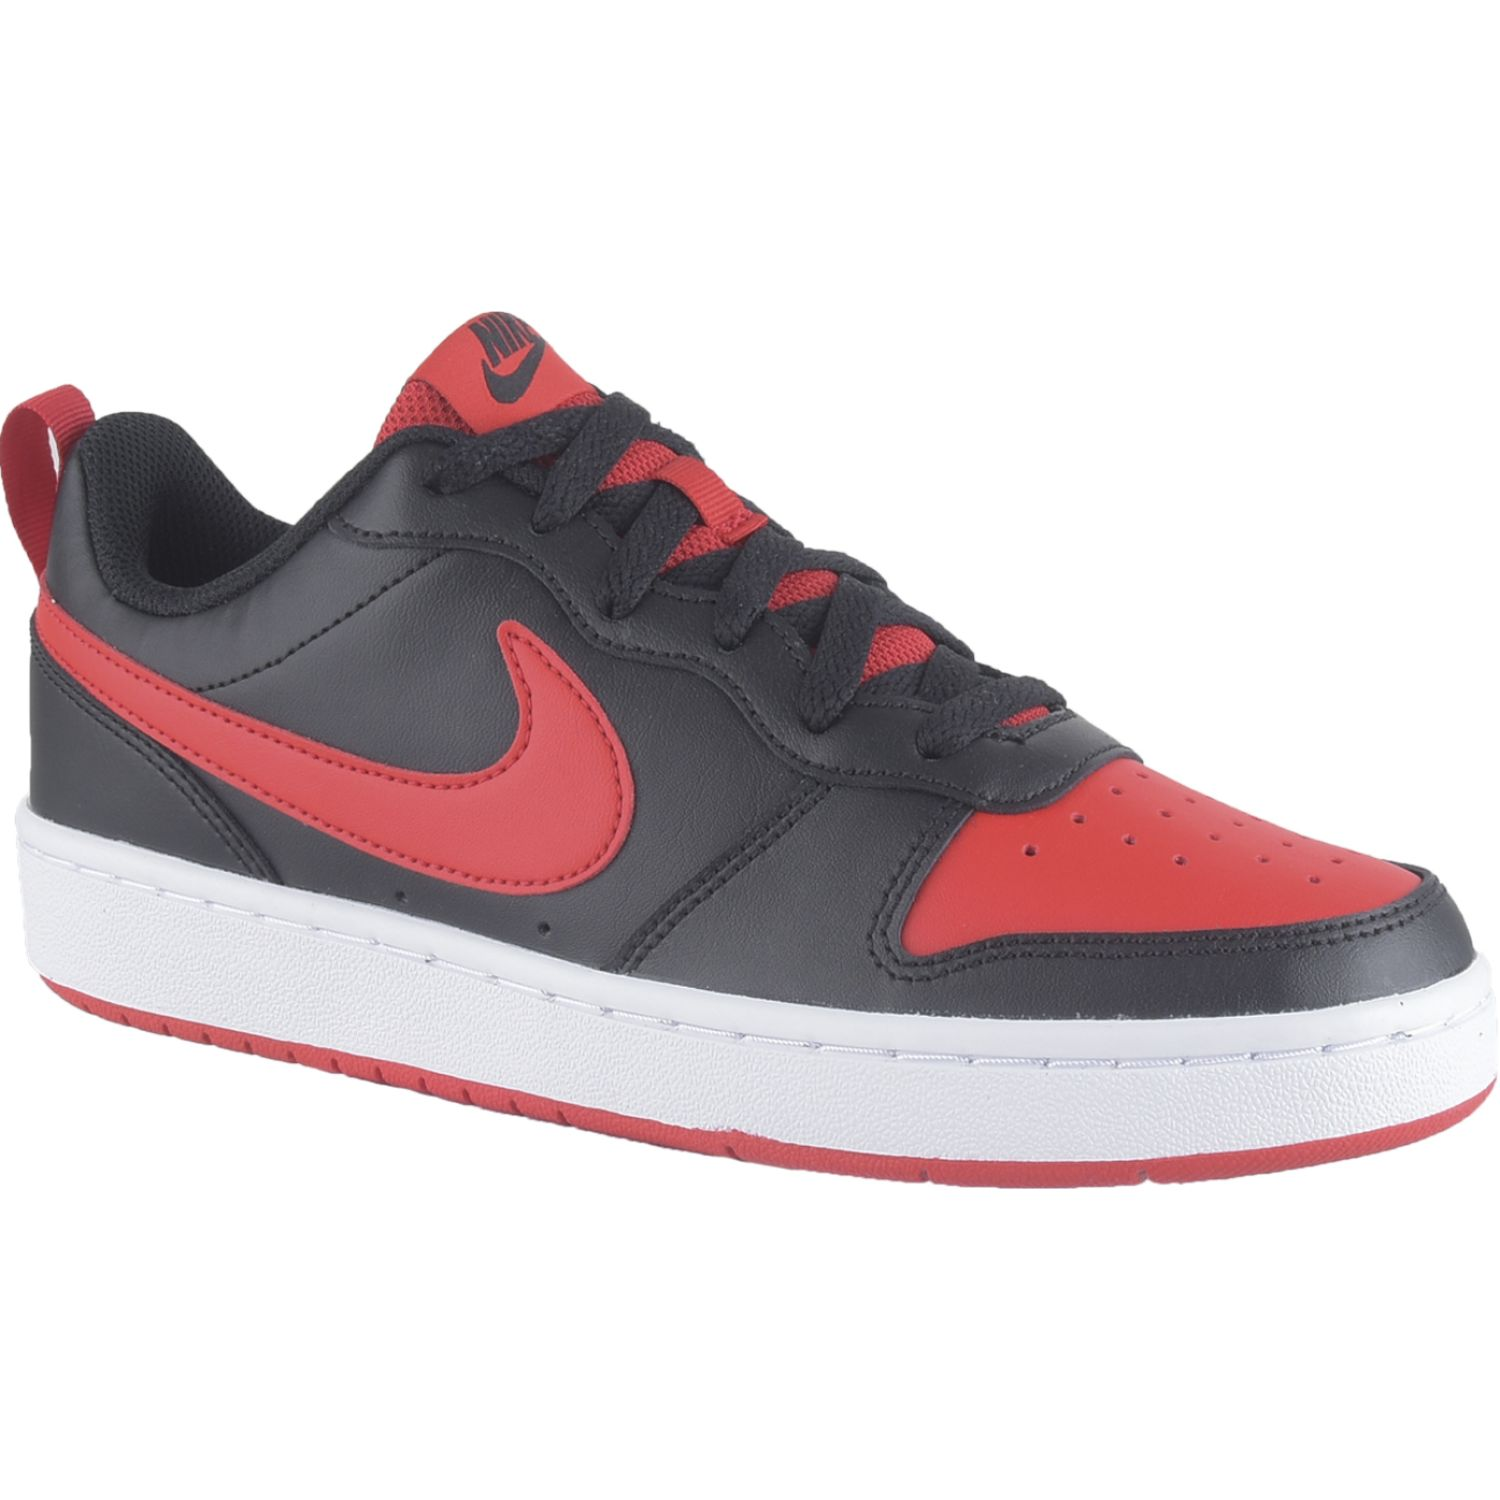 Nike Court Borough Low 2 Bg Negro / rojo Para caminar